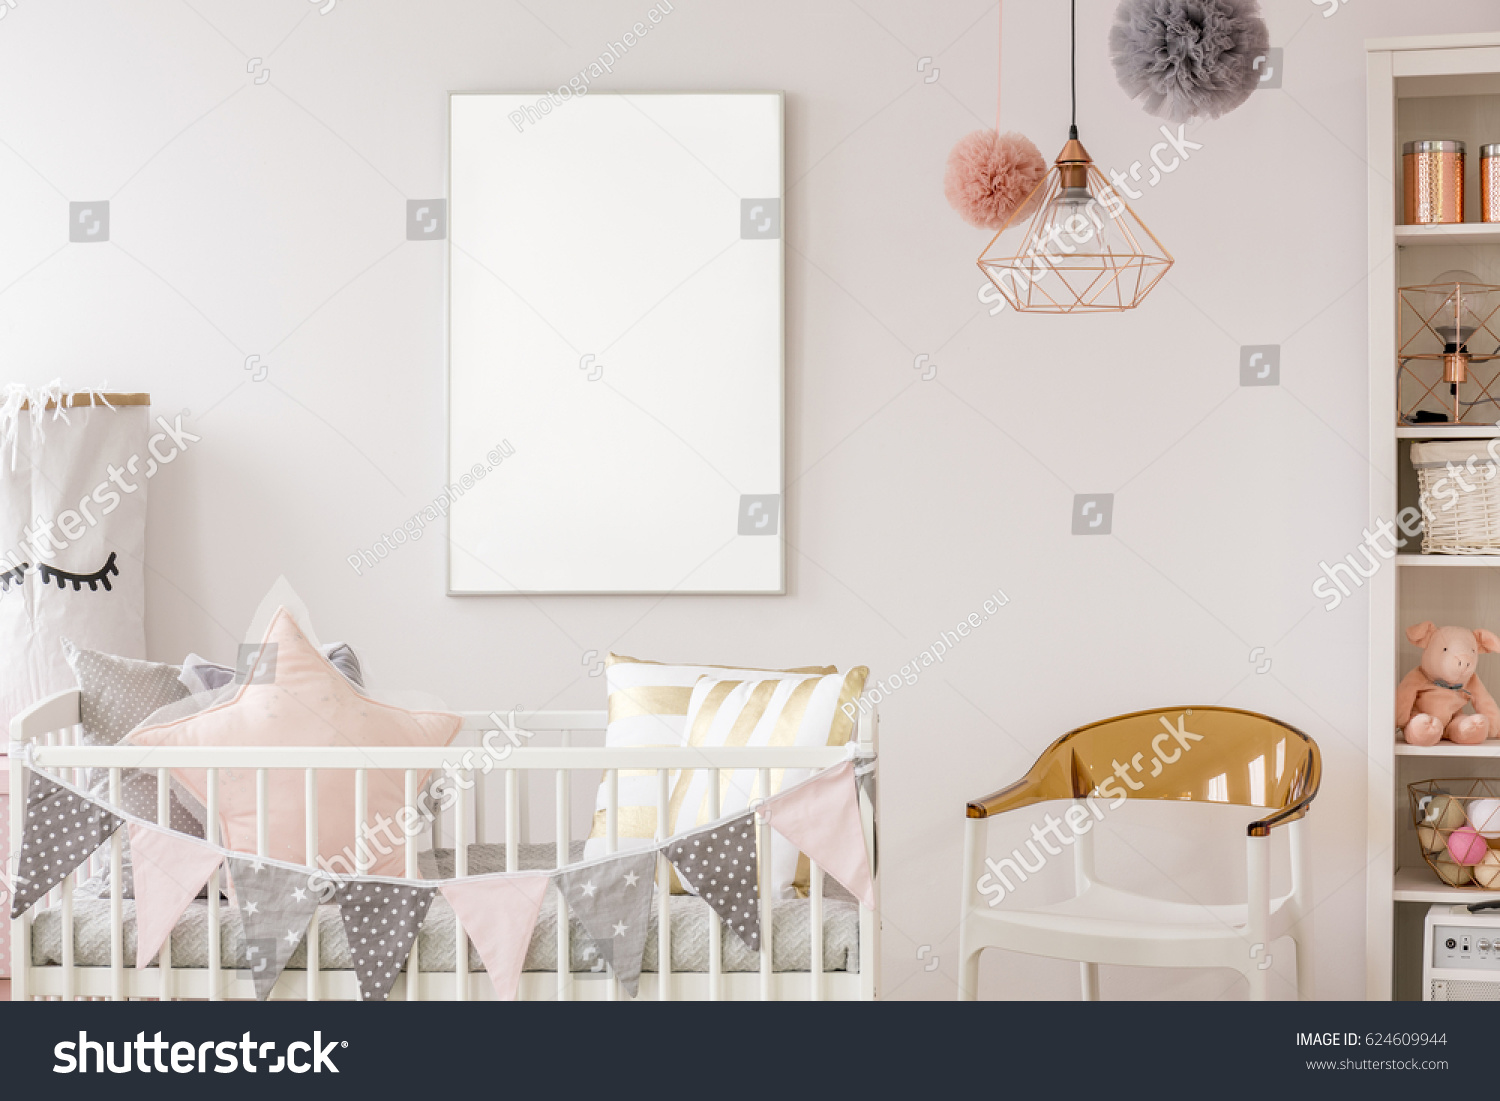 Uncategorized Scandinavian Crib scandinavian baby room white crib chair stock photo 624609944 with bookshelf wall poster